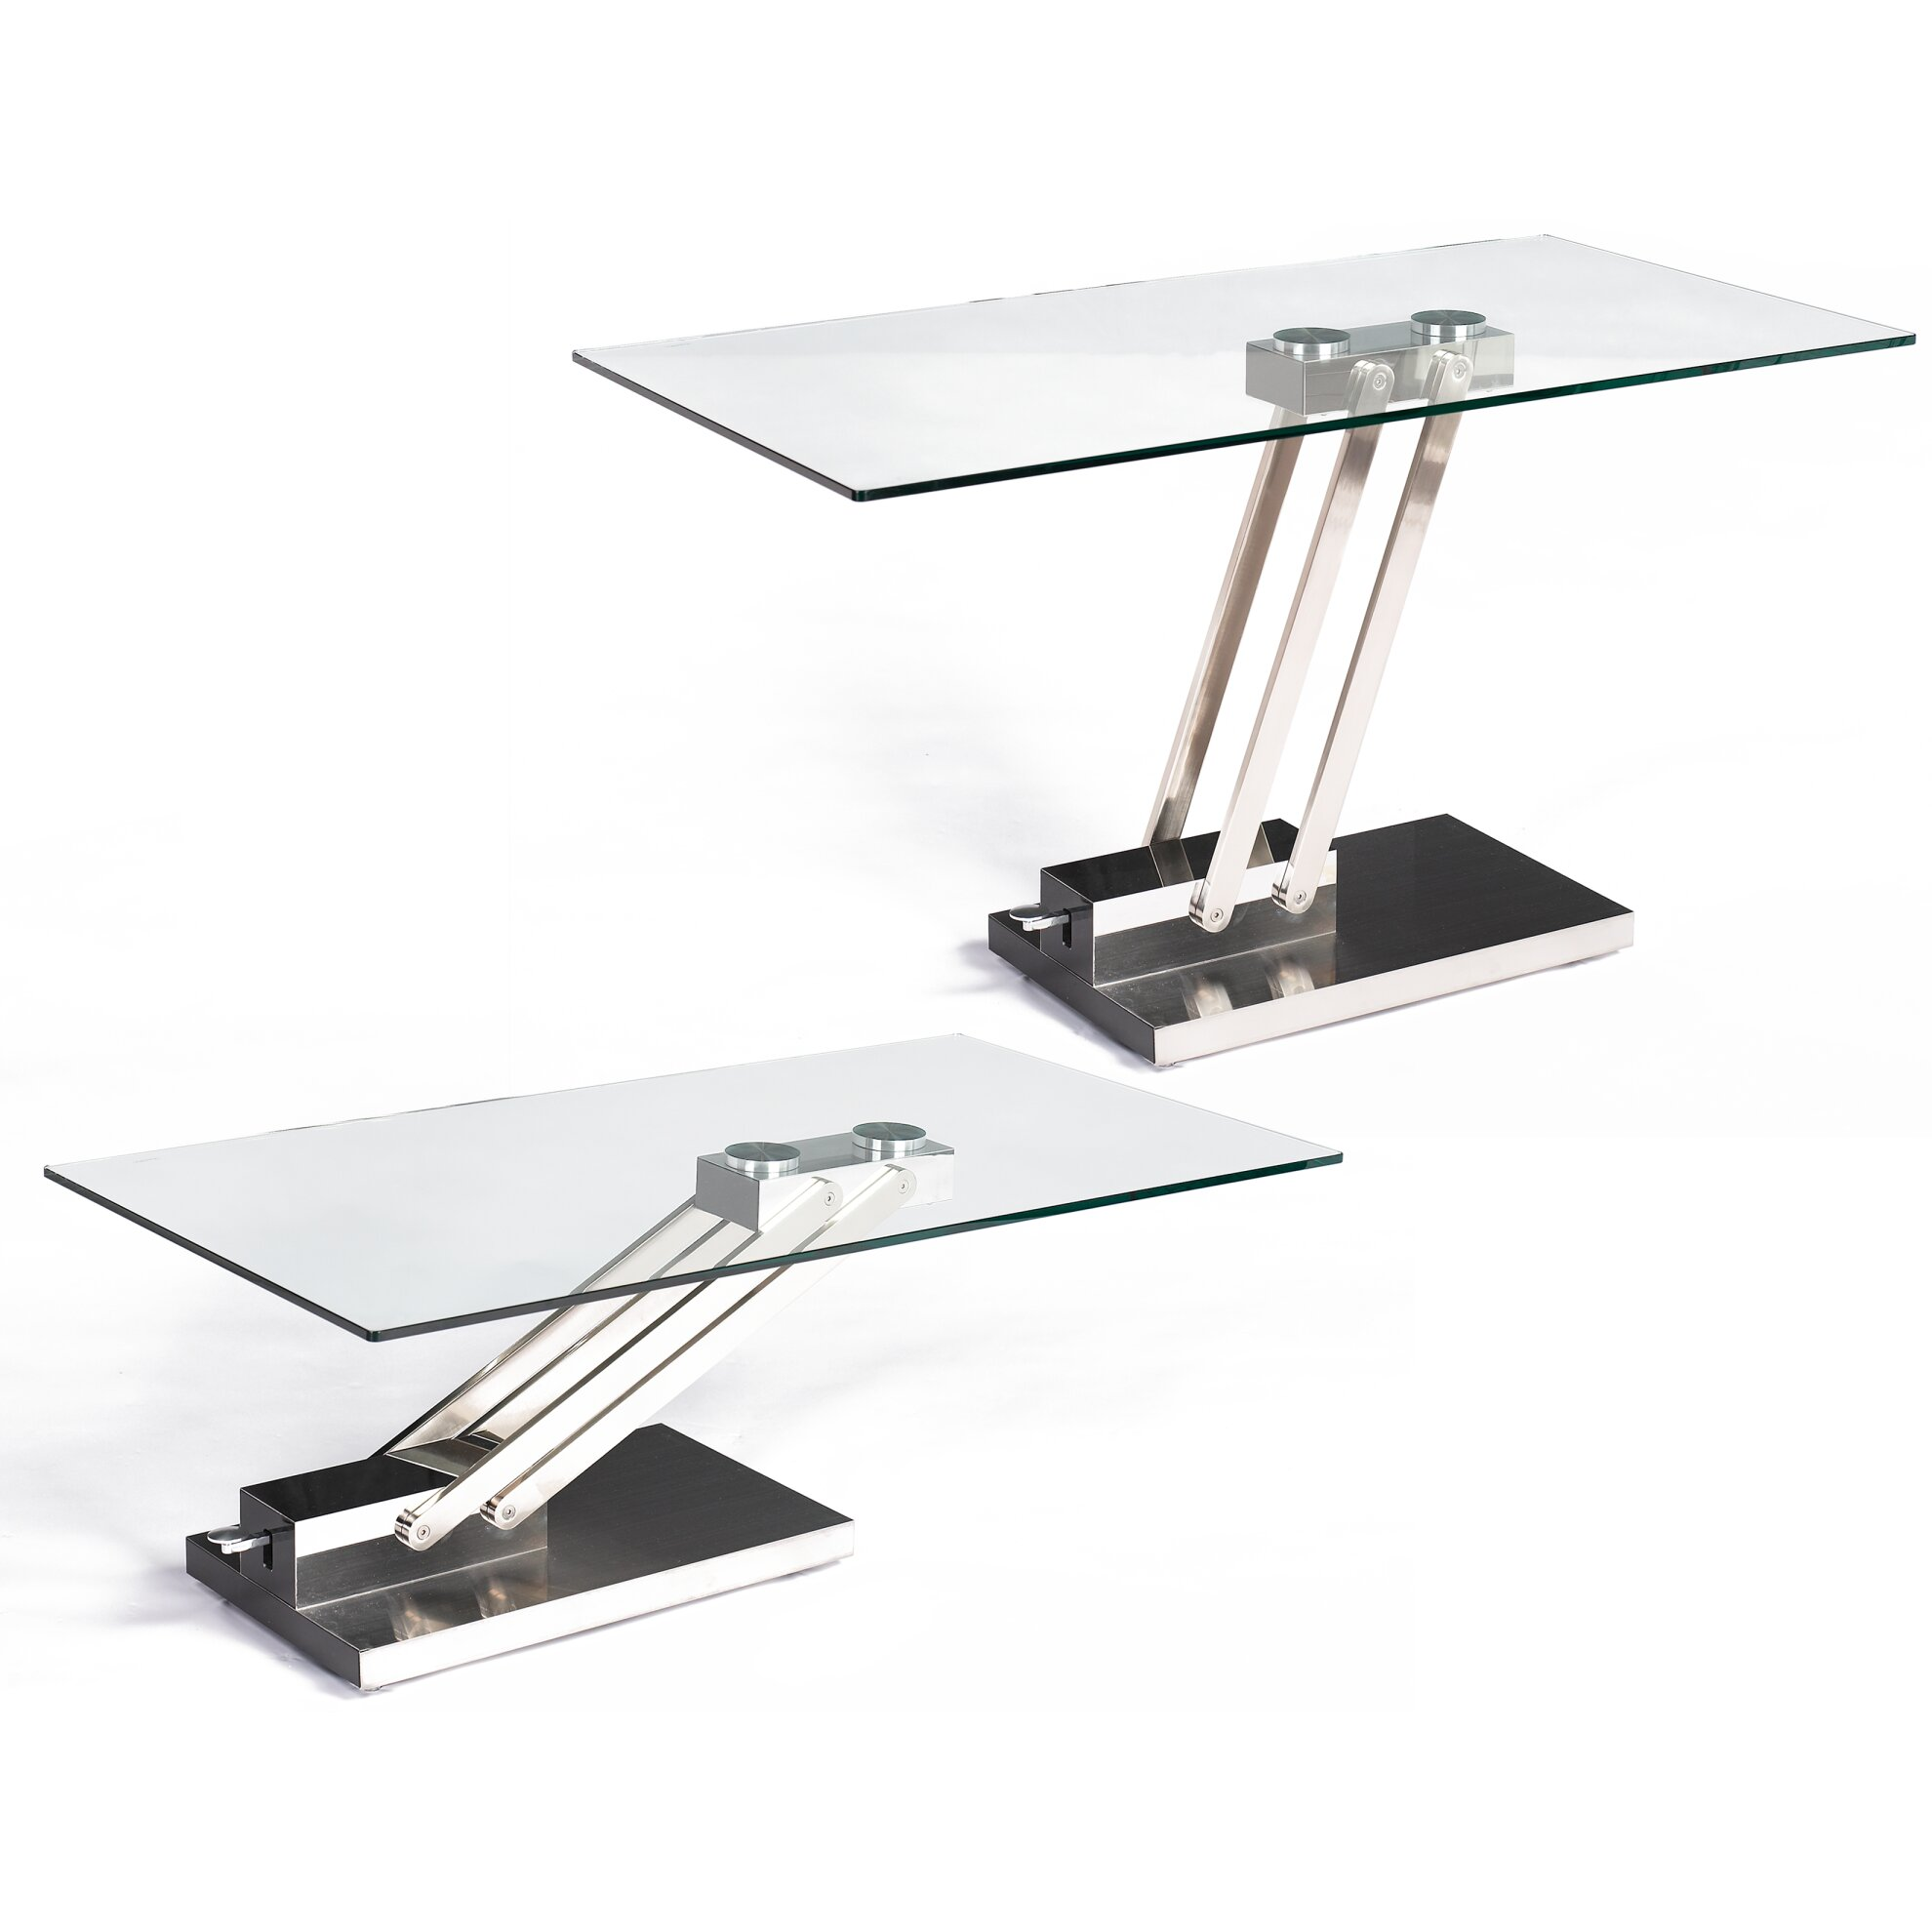 Crank up coffee table instacoffeetable crank up coffee table geotapseo Image collections